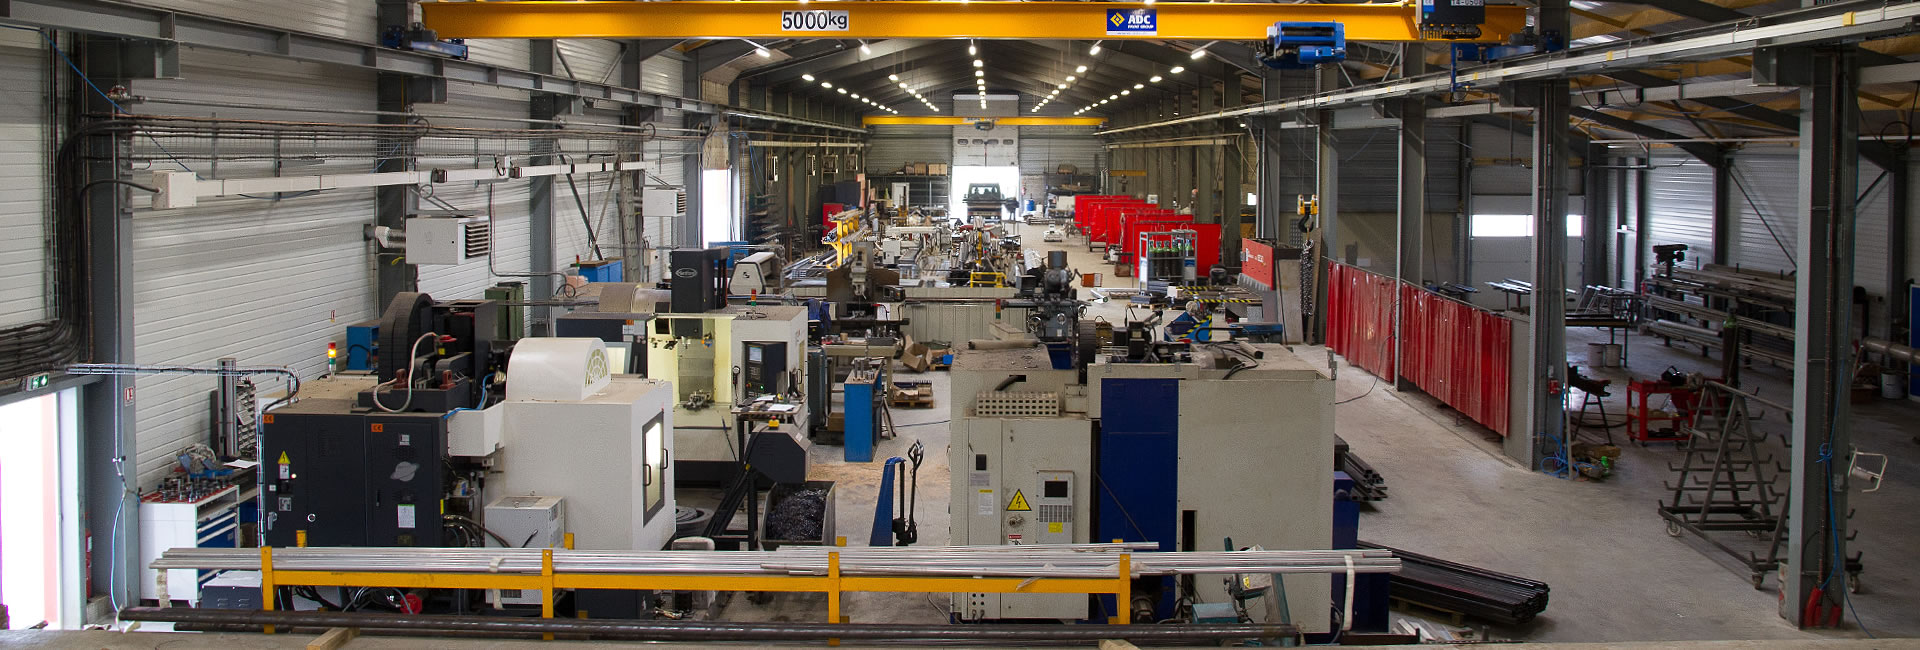 Ateliers et machines de Normoutils Industrie